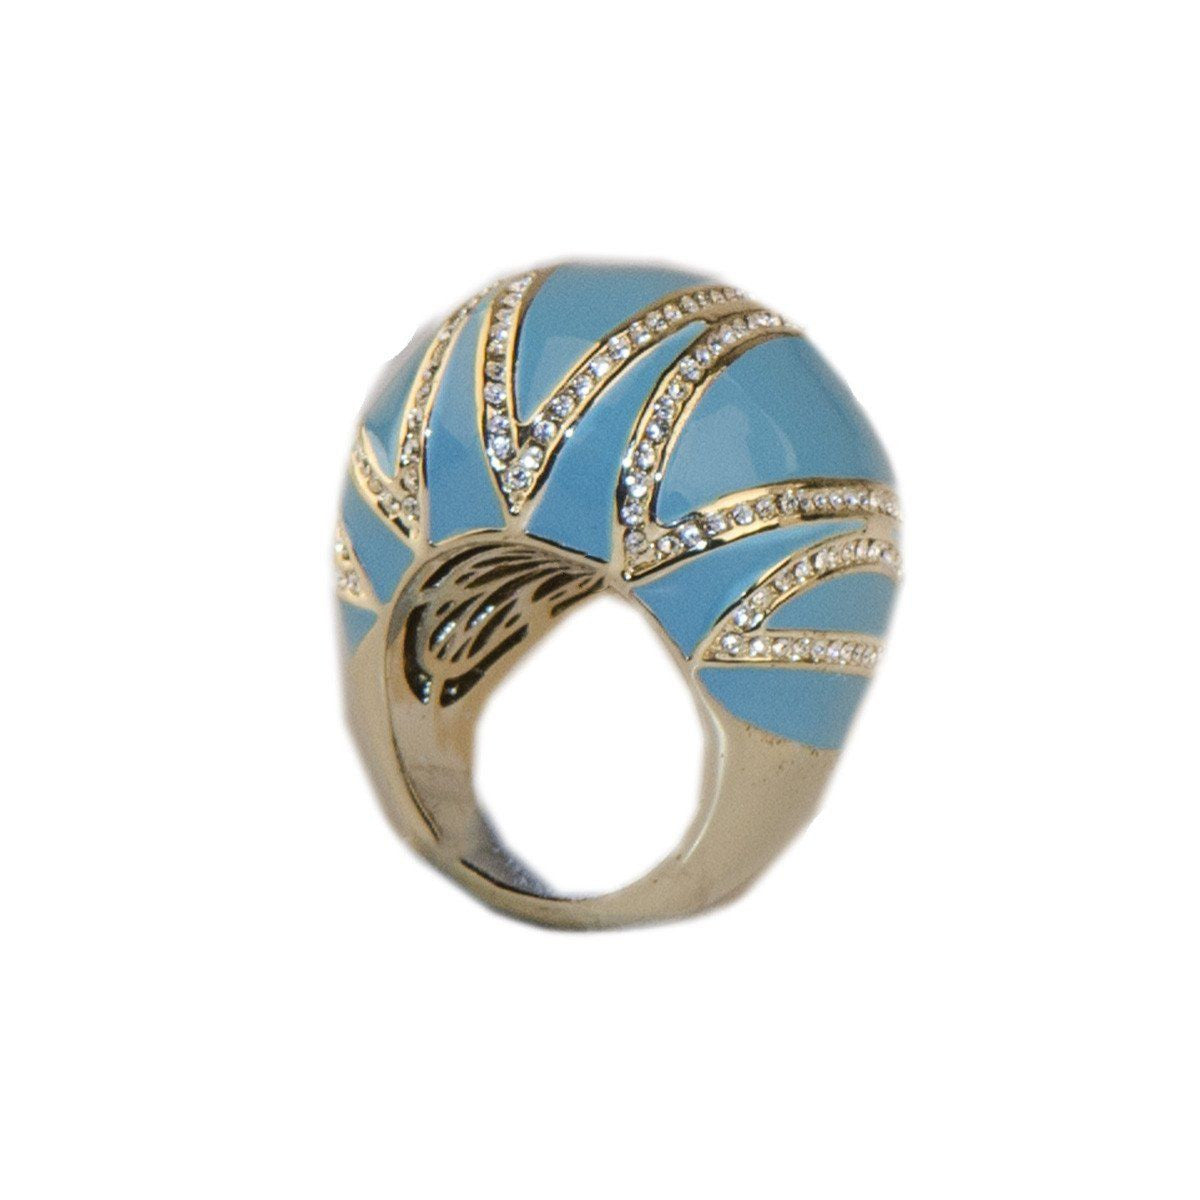 Joan Boyce Bubble Ring 5, Turquoise Blue Enamel & Crystals, Ring, Size 6